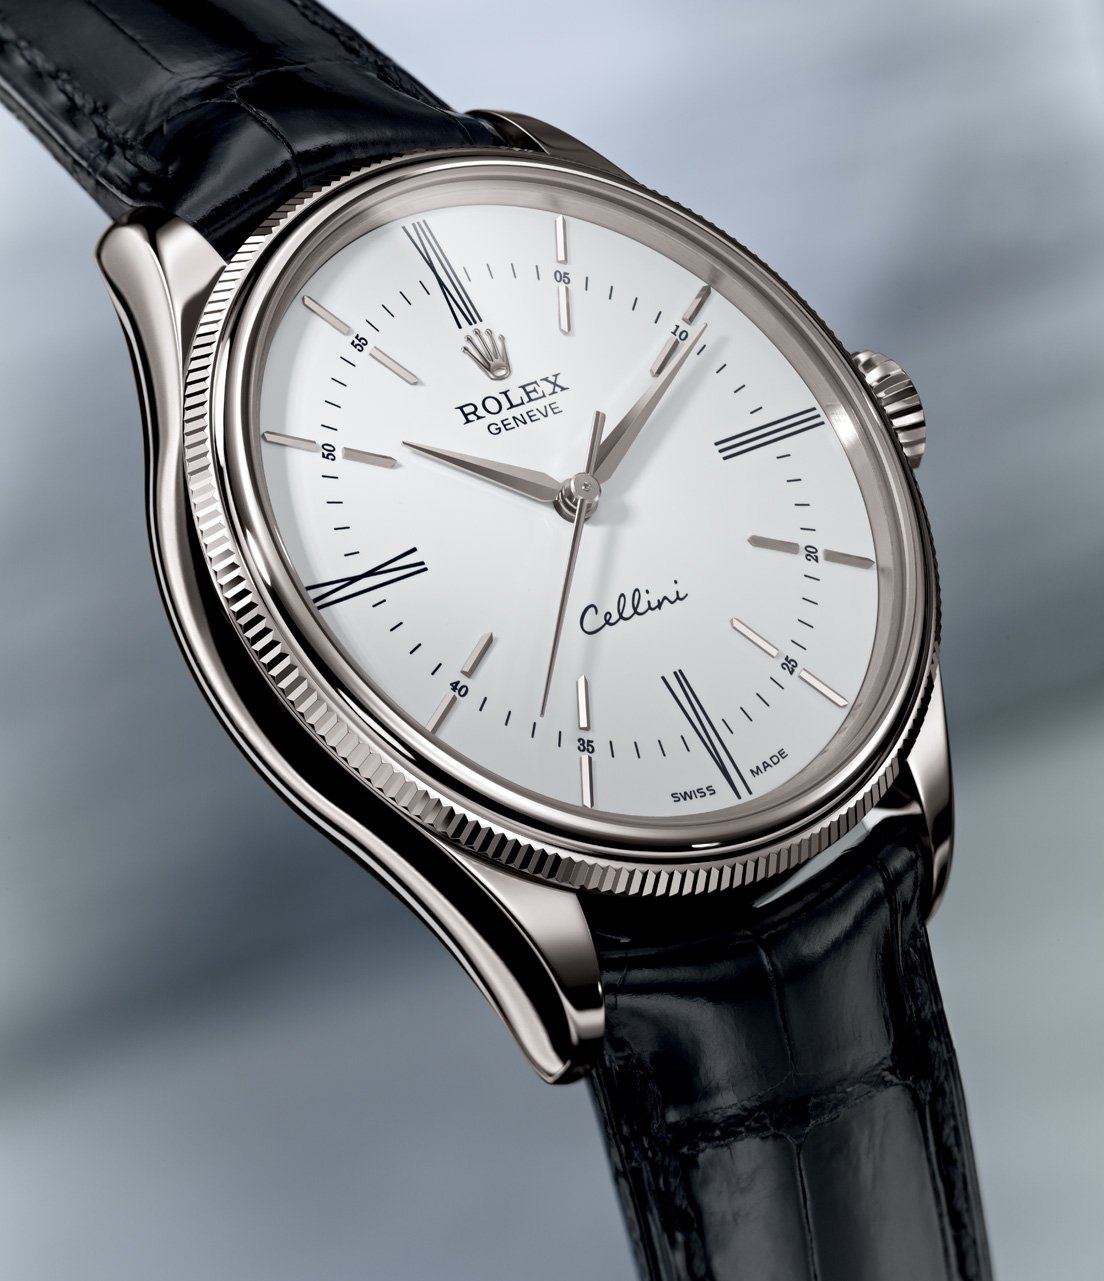 Introducing The New Rolex Cellini Time Replica Watch With Clean Dial